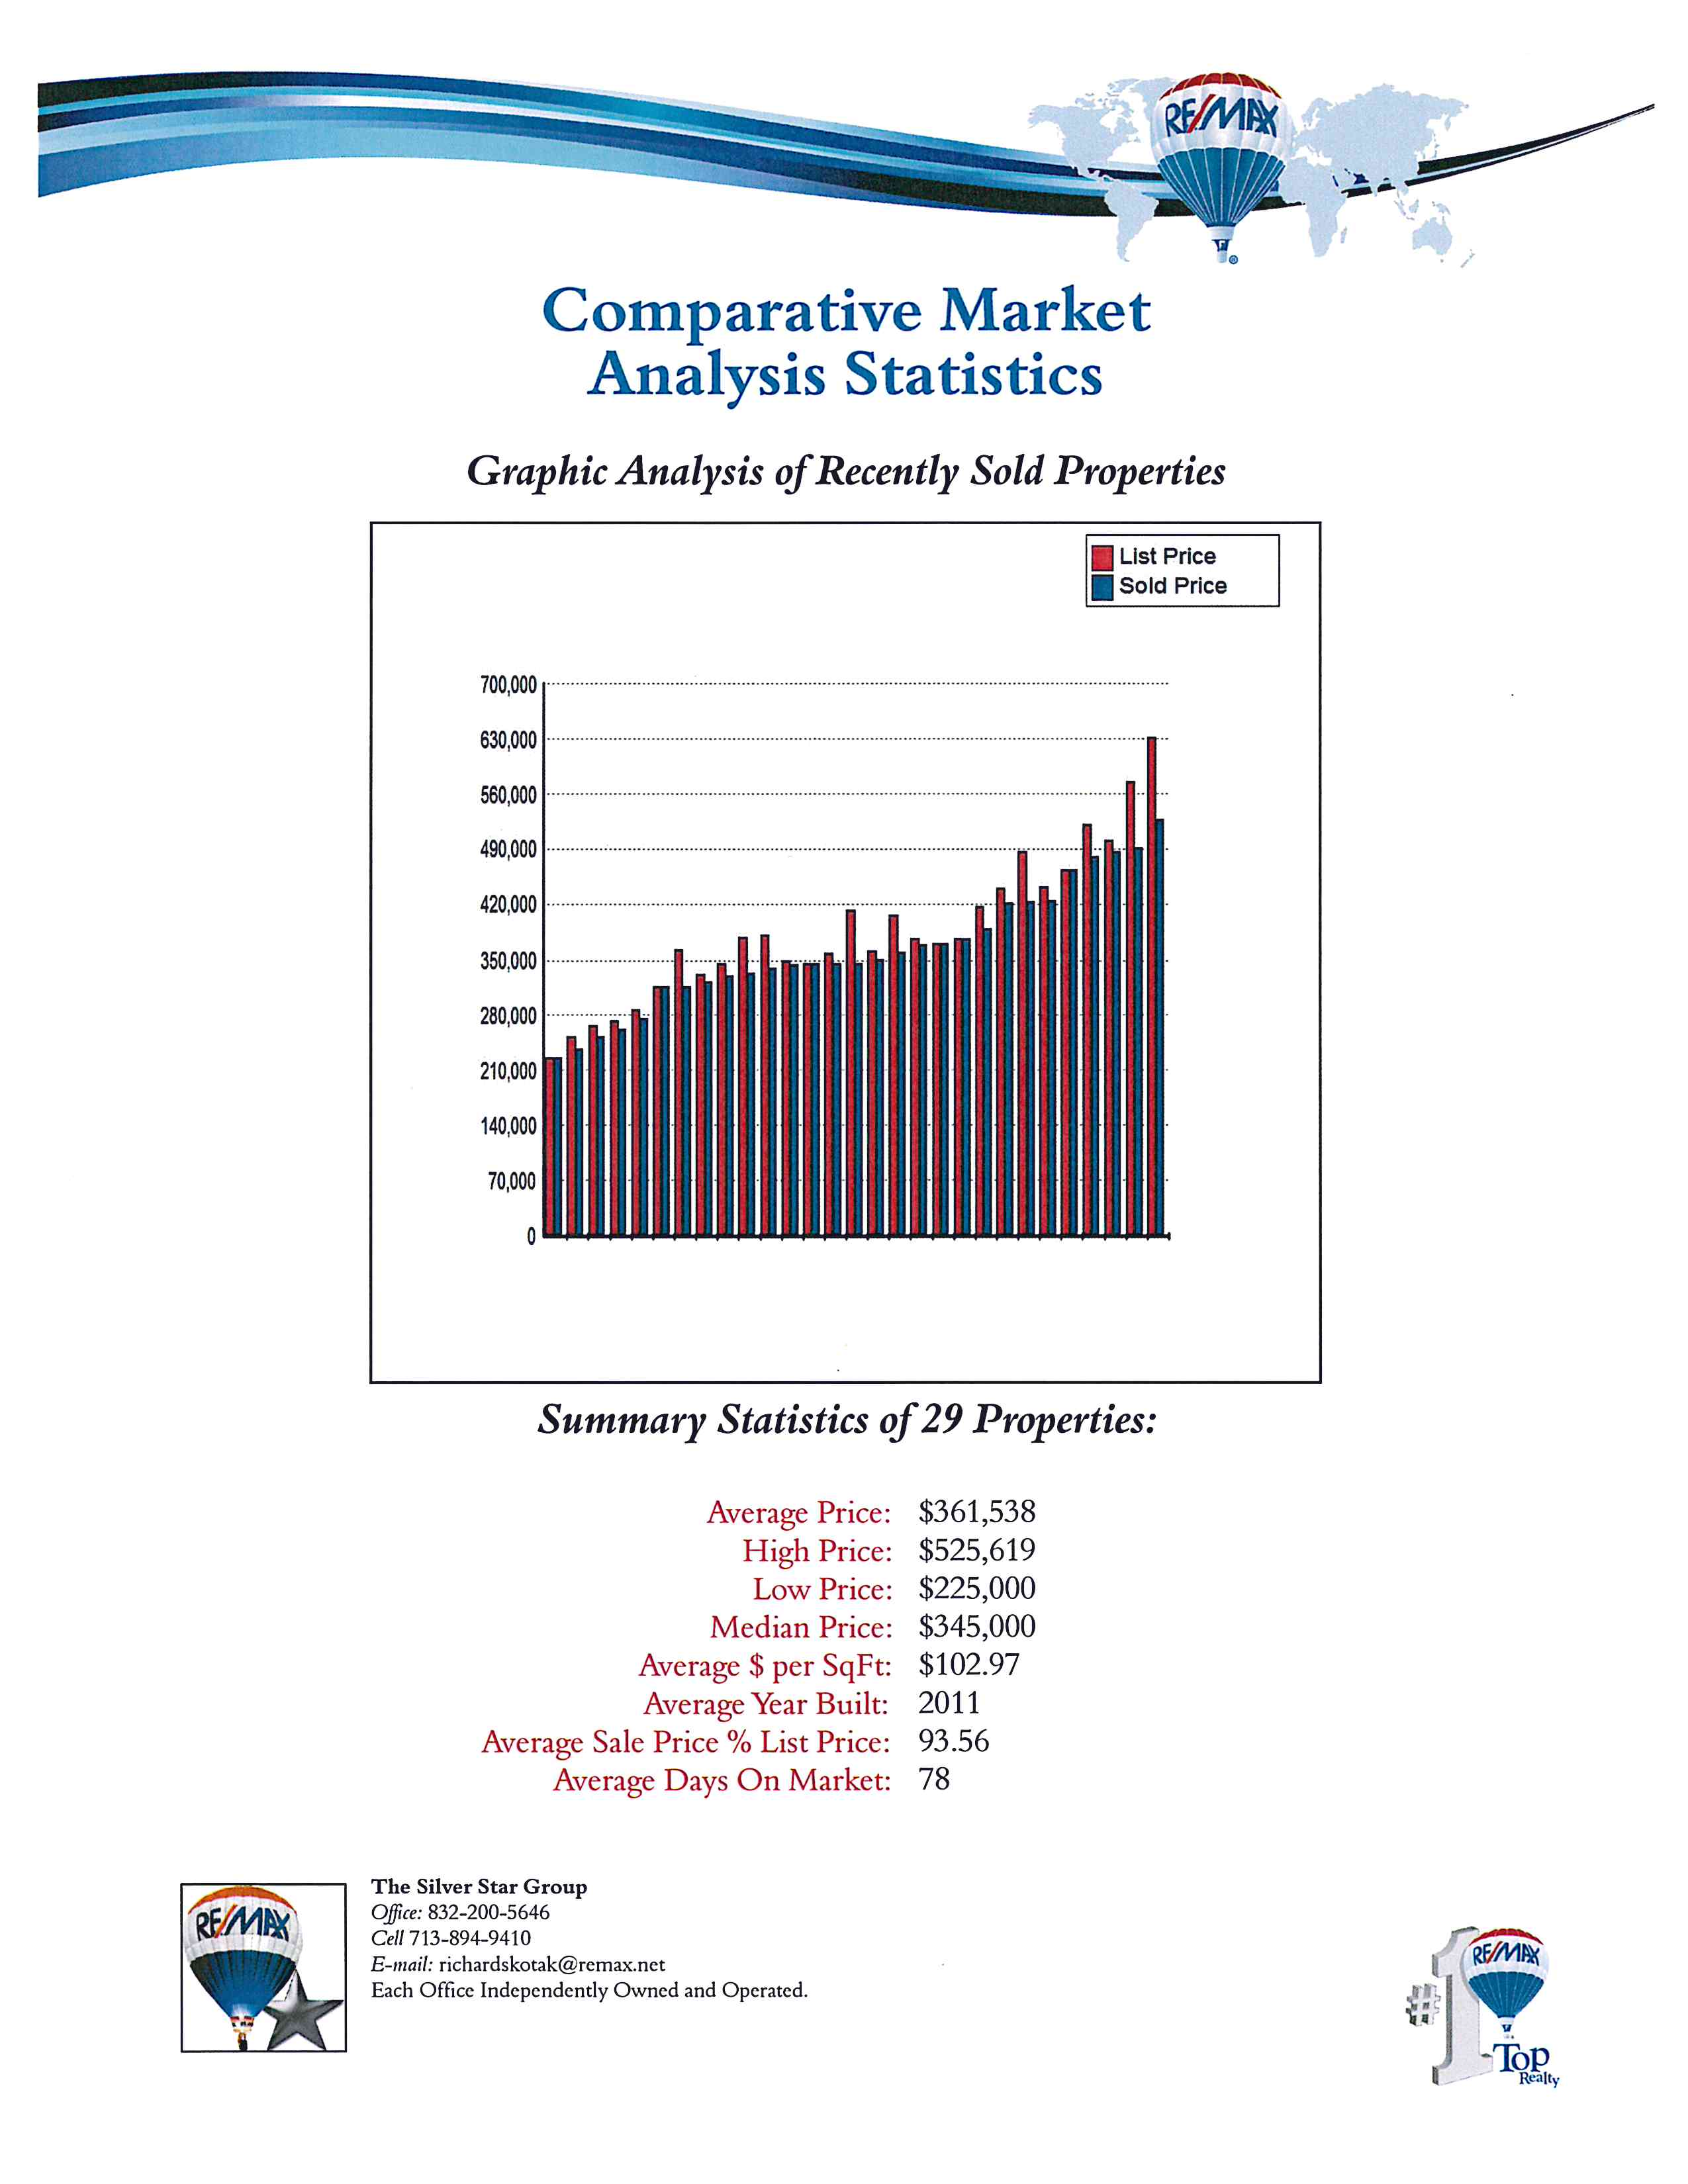 Sedona Lakes Homes Sold | The Silver Star Group